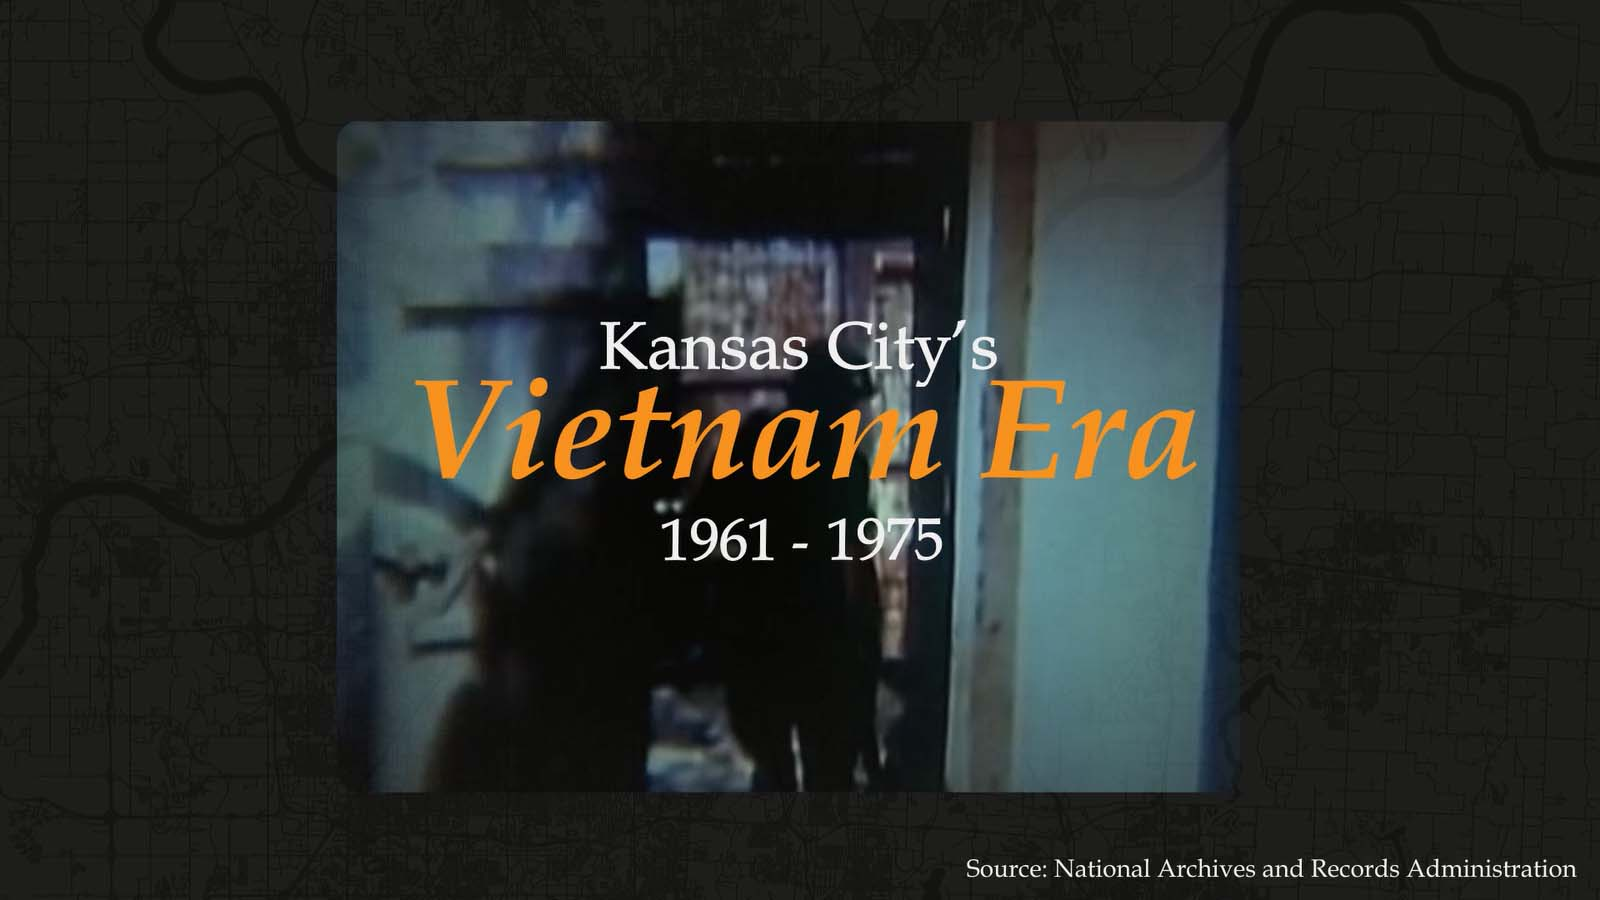 Get the story of Kansas City's Vietnam era history with this animated timeline (Jesse Howe | Flatland)